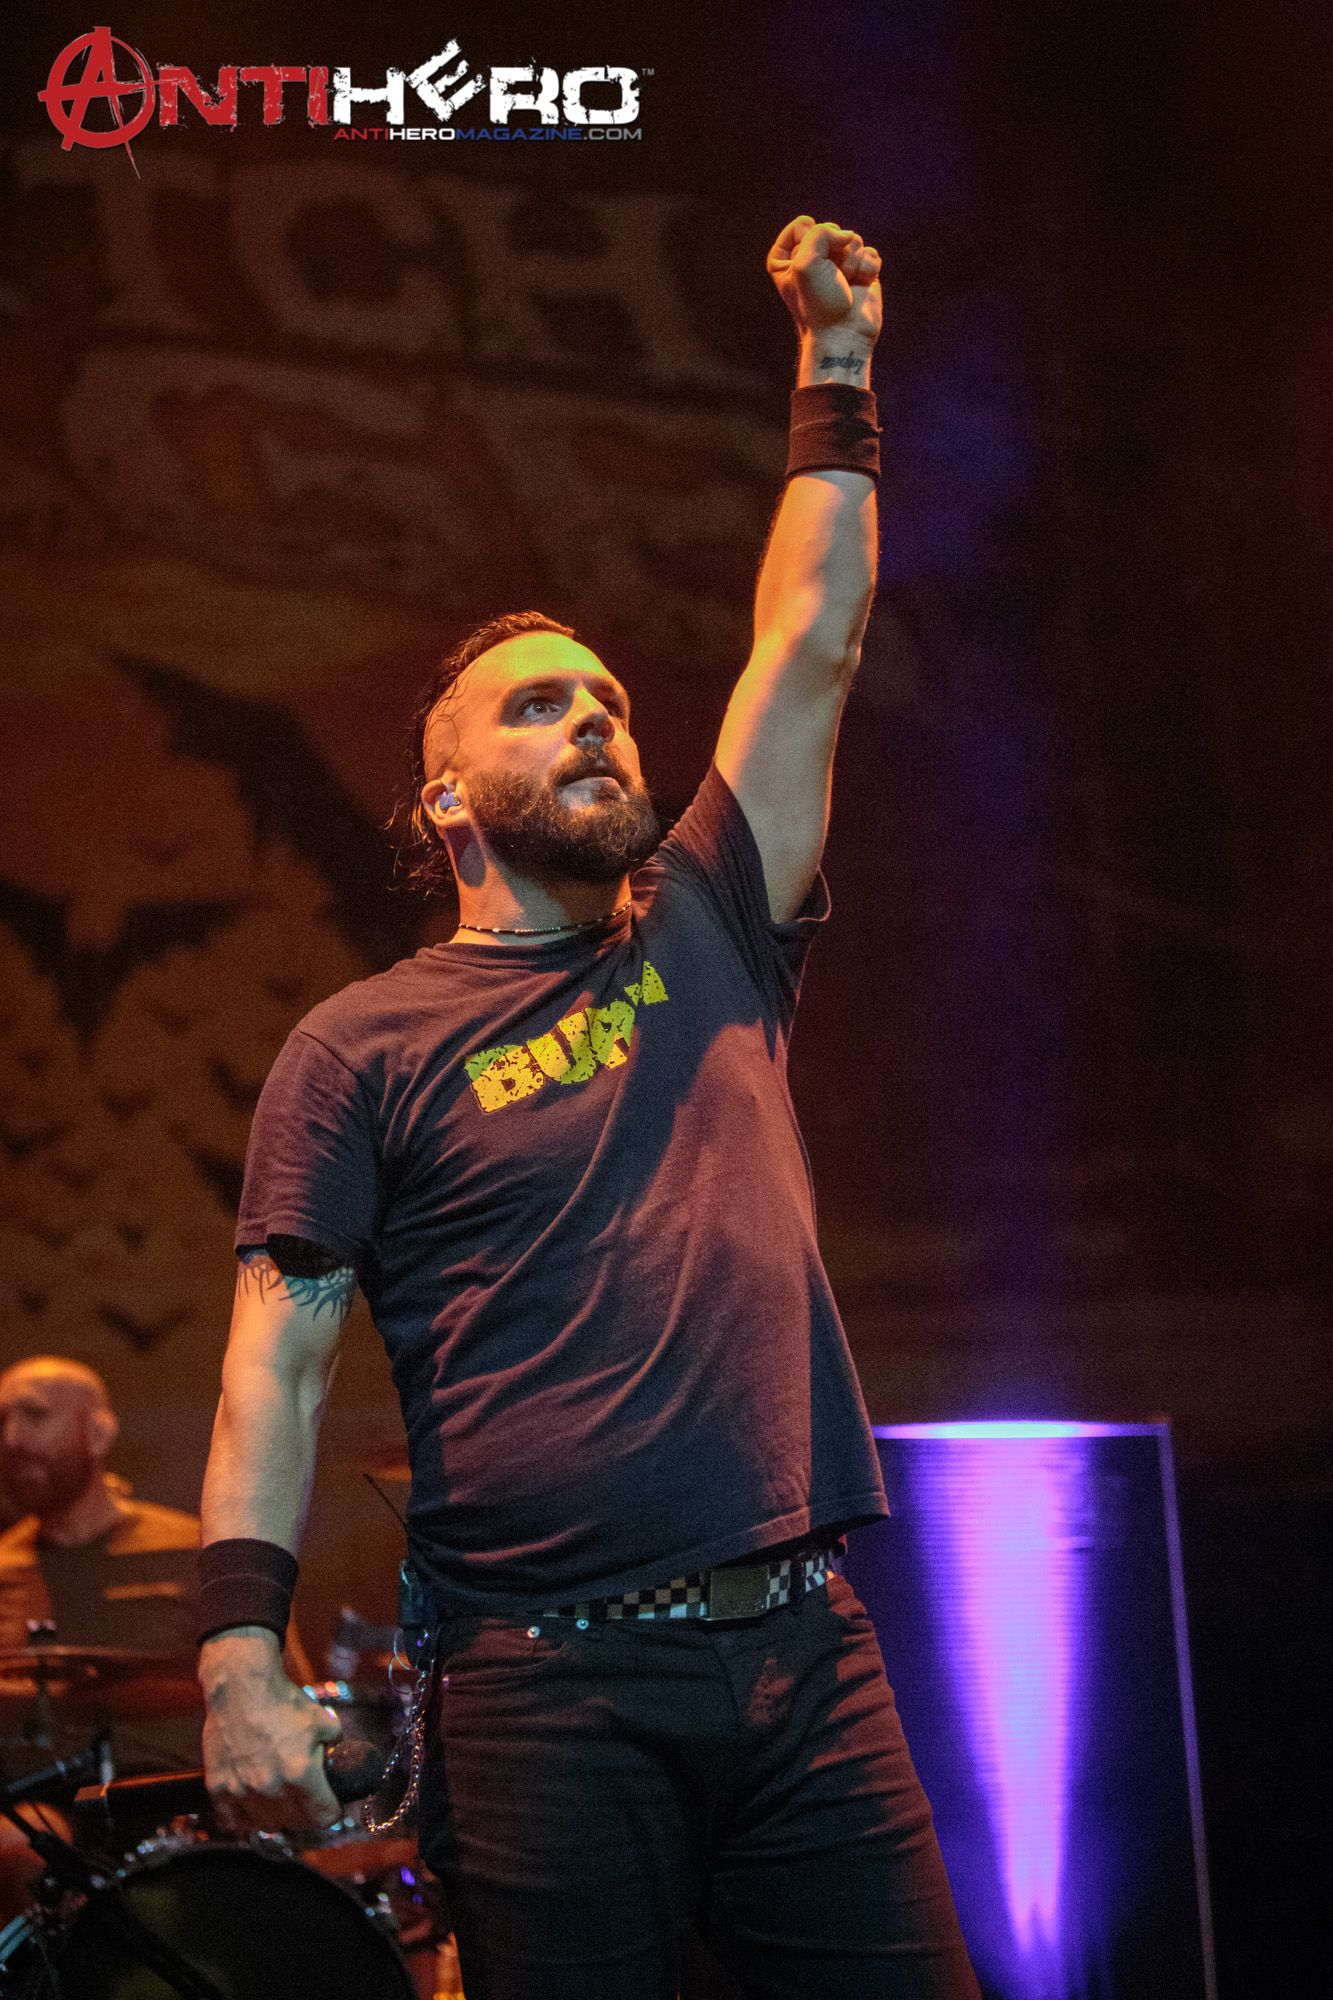 Killswitch Engage | My Concert Photos in 2019 | Killswitch